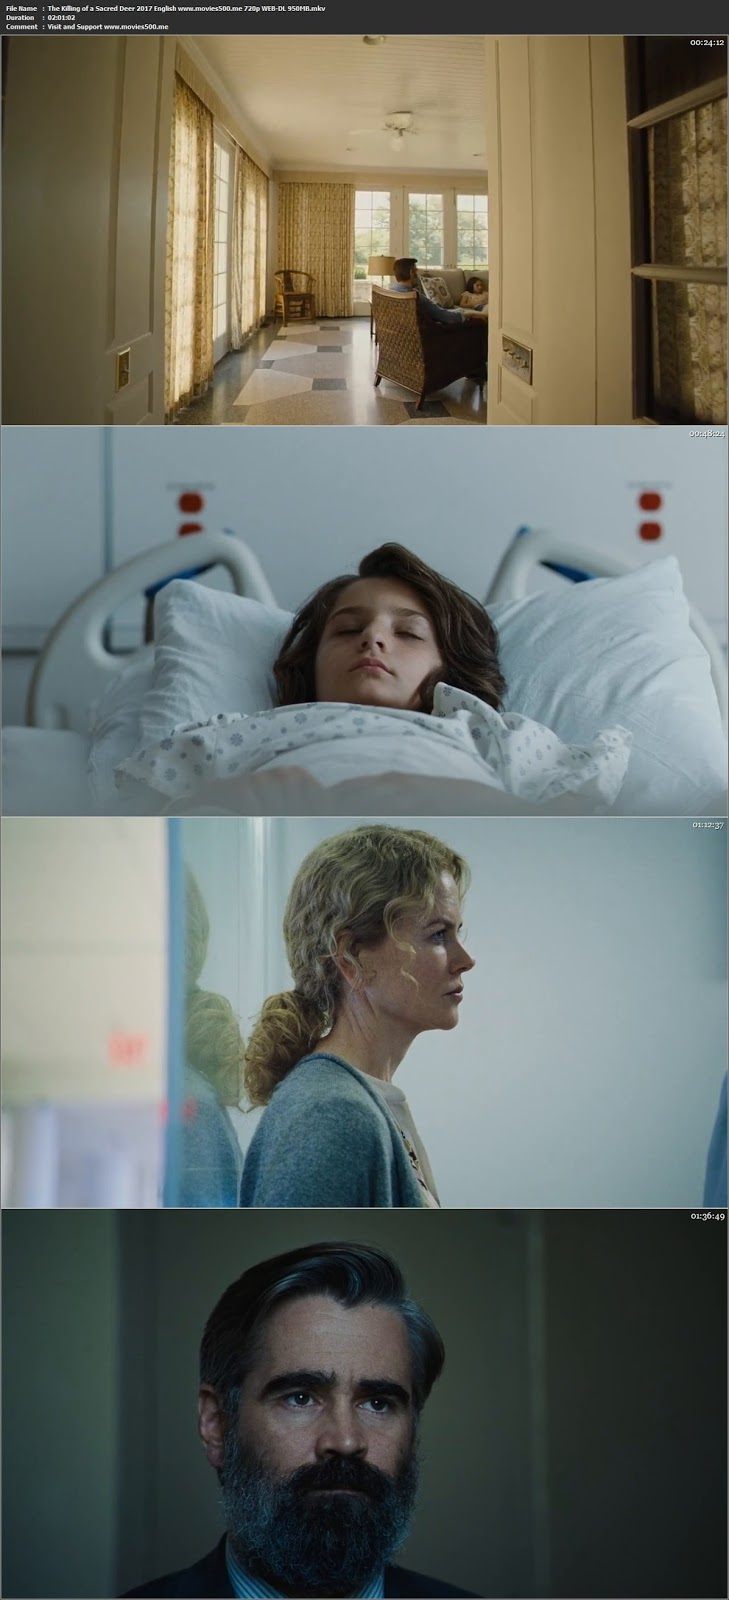 The Killing of a Sacred Deer 2017 English Full Movie WEB DL 720p at softwaresonly.com